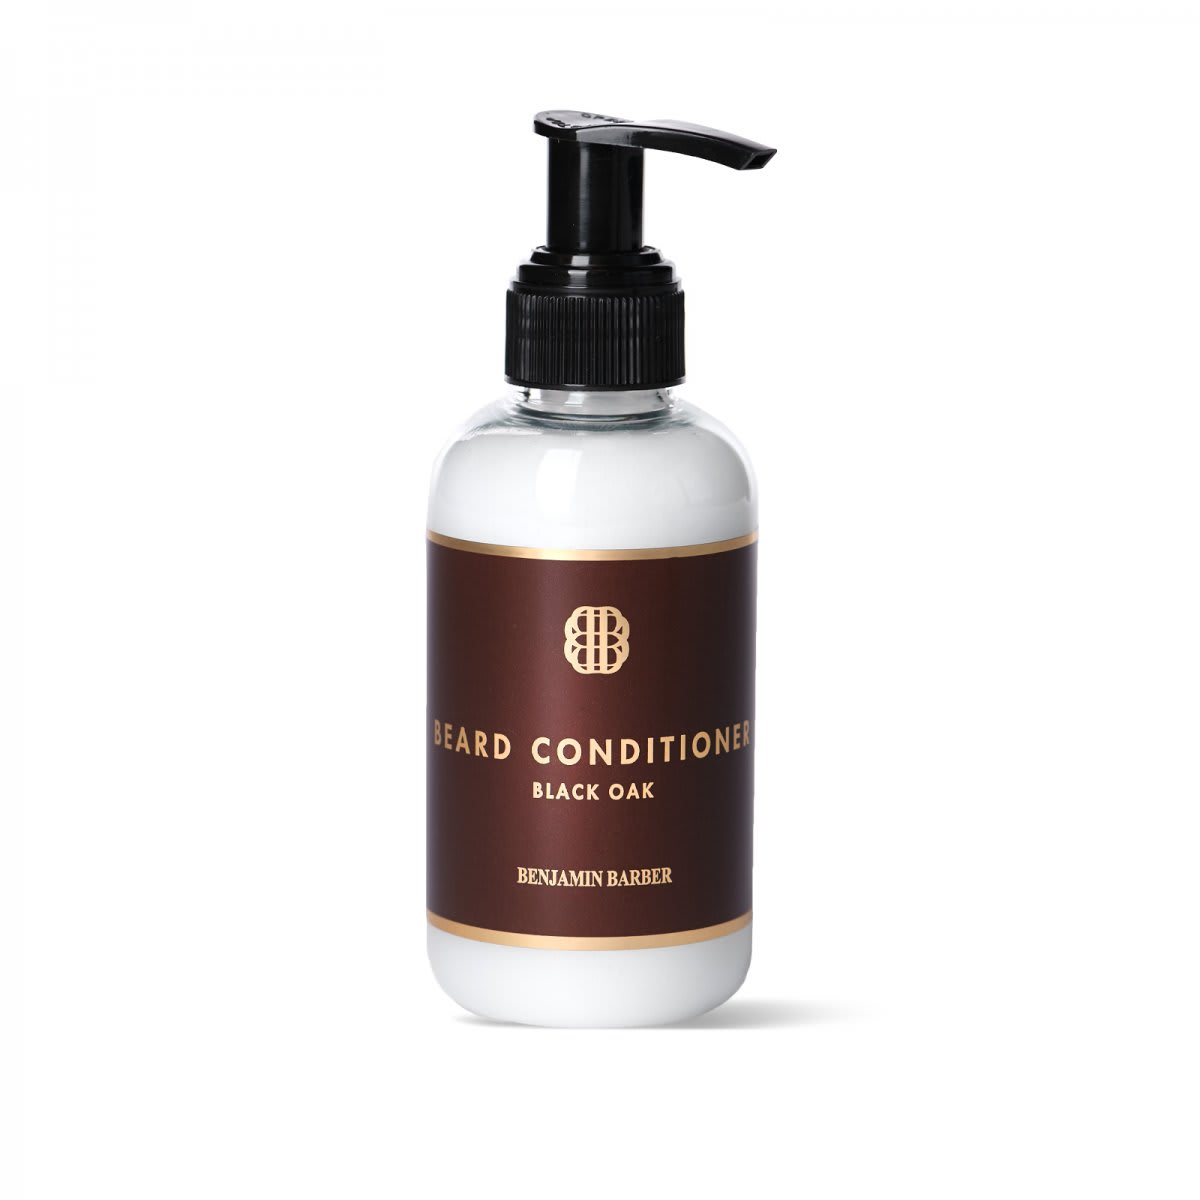 Benjamin Barber Beard Conditioner Black Oak 150 ml